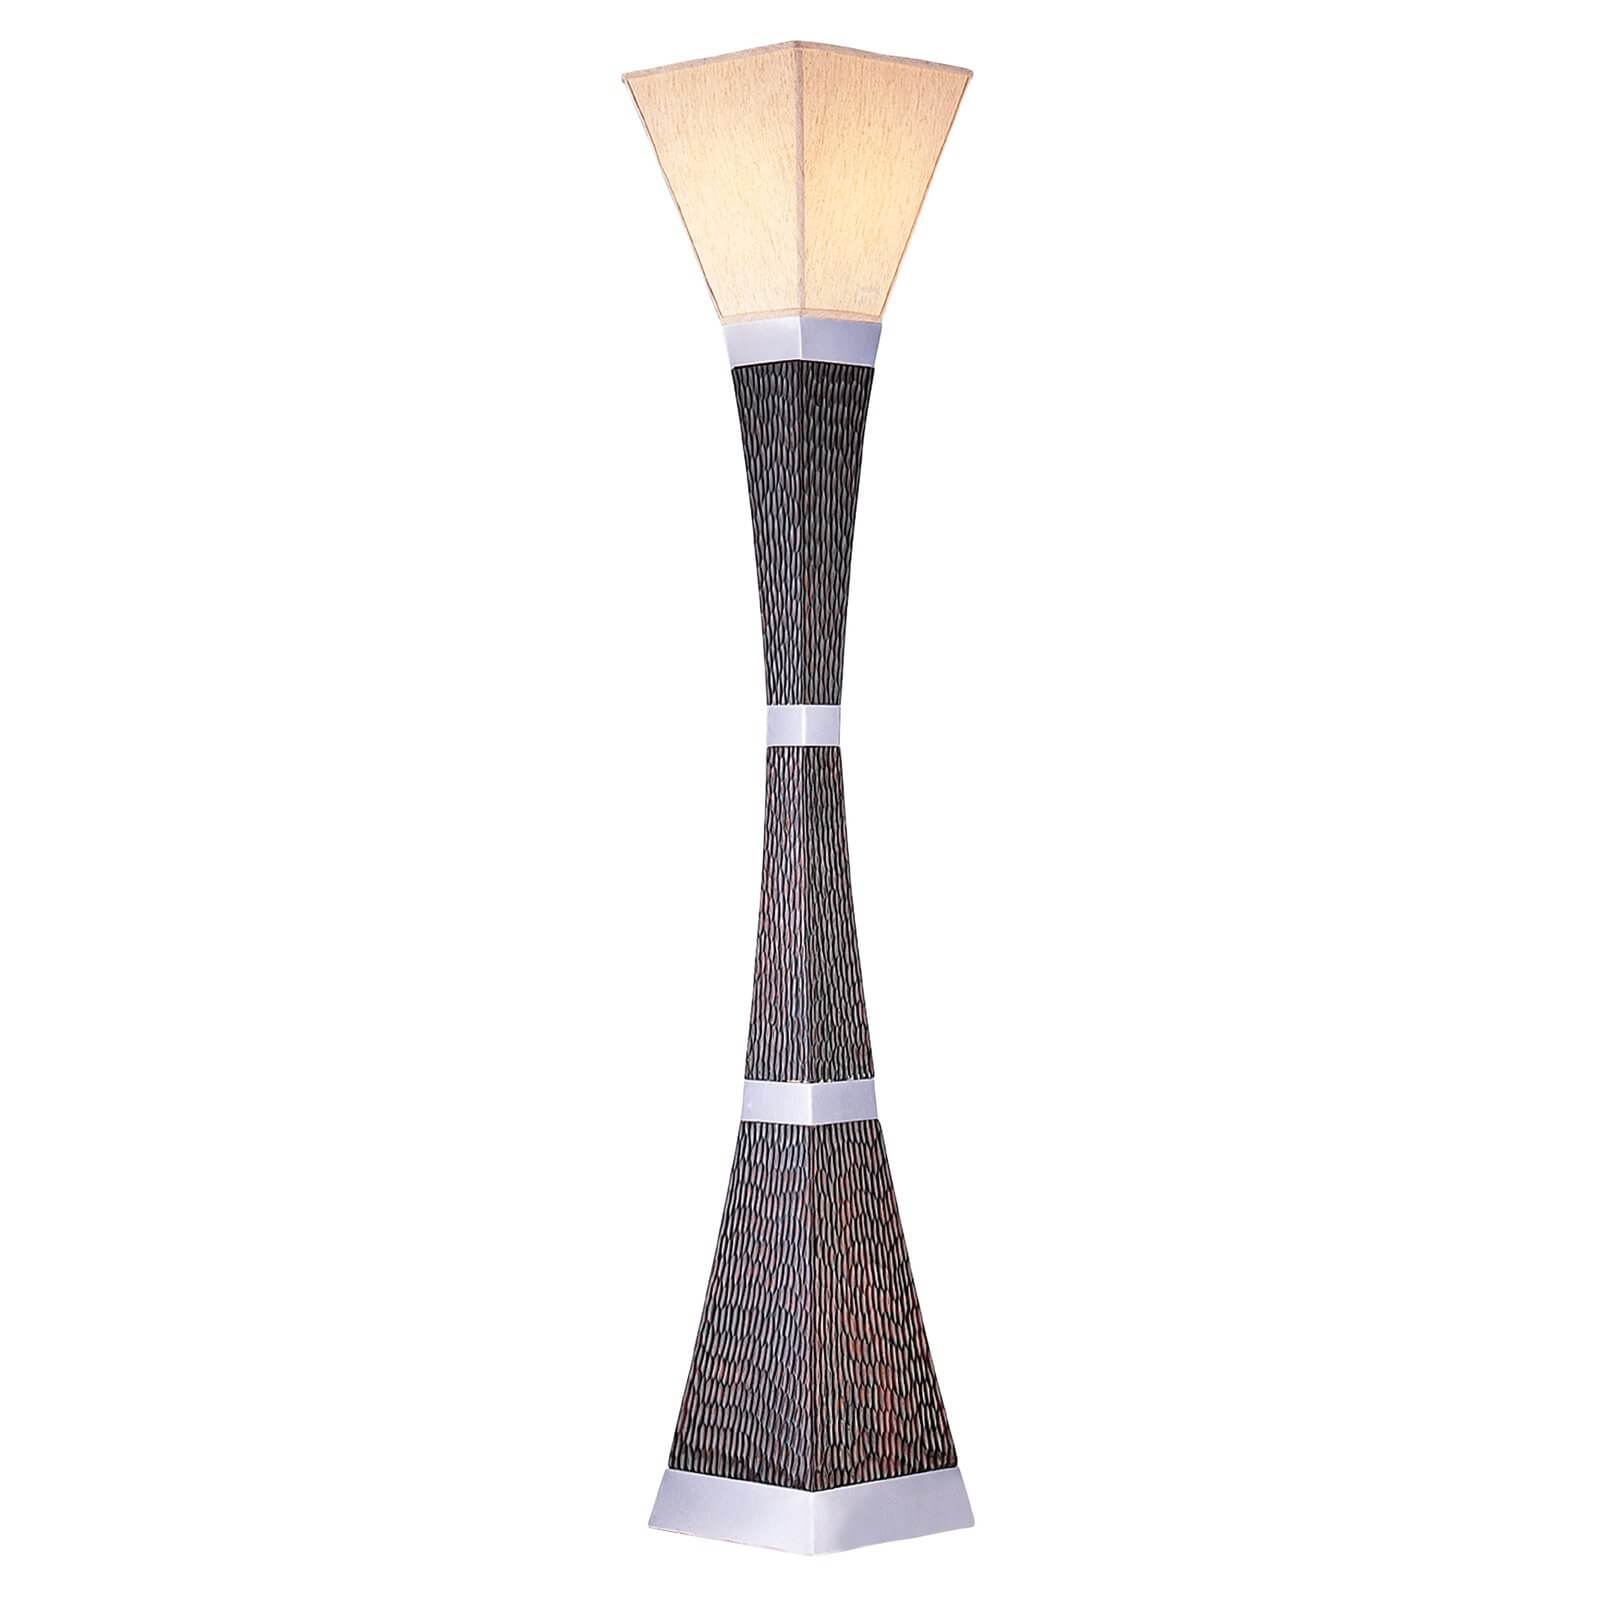 Our second torchiere lamp conveys a boldly contemporary style, with an hourglass shape crafted in textured wood and metal.